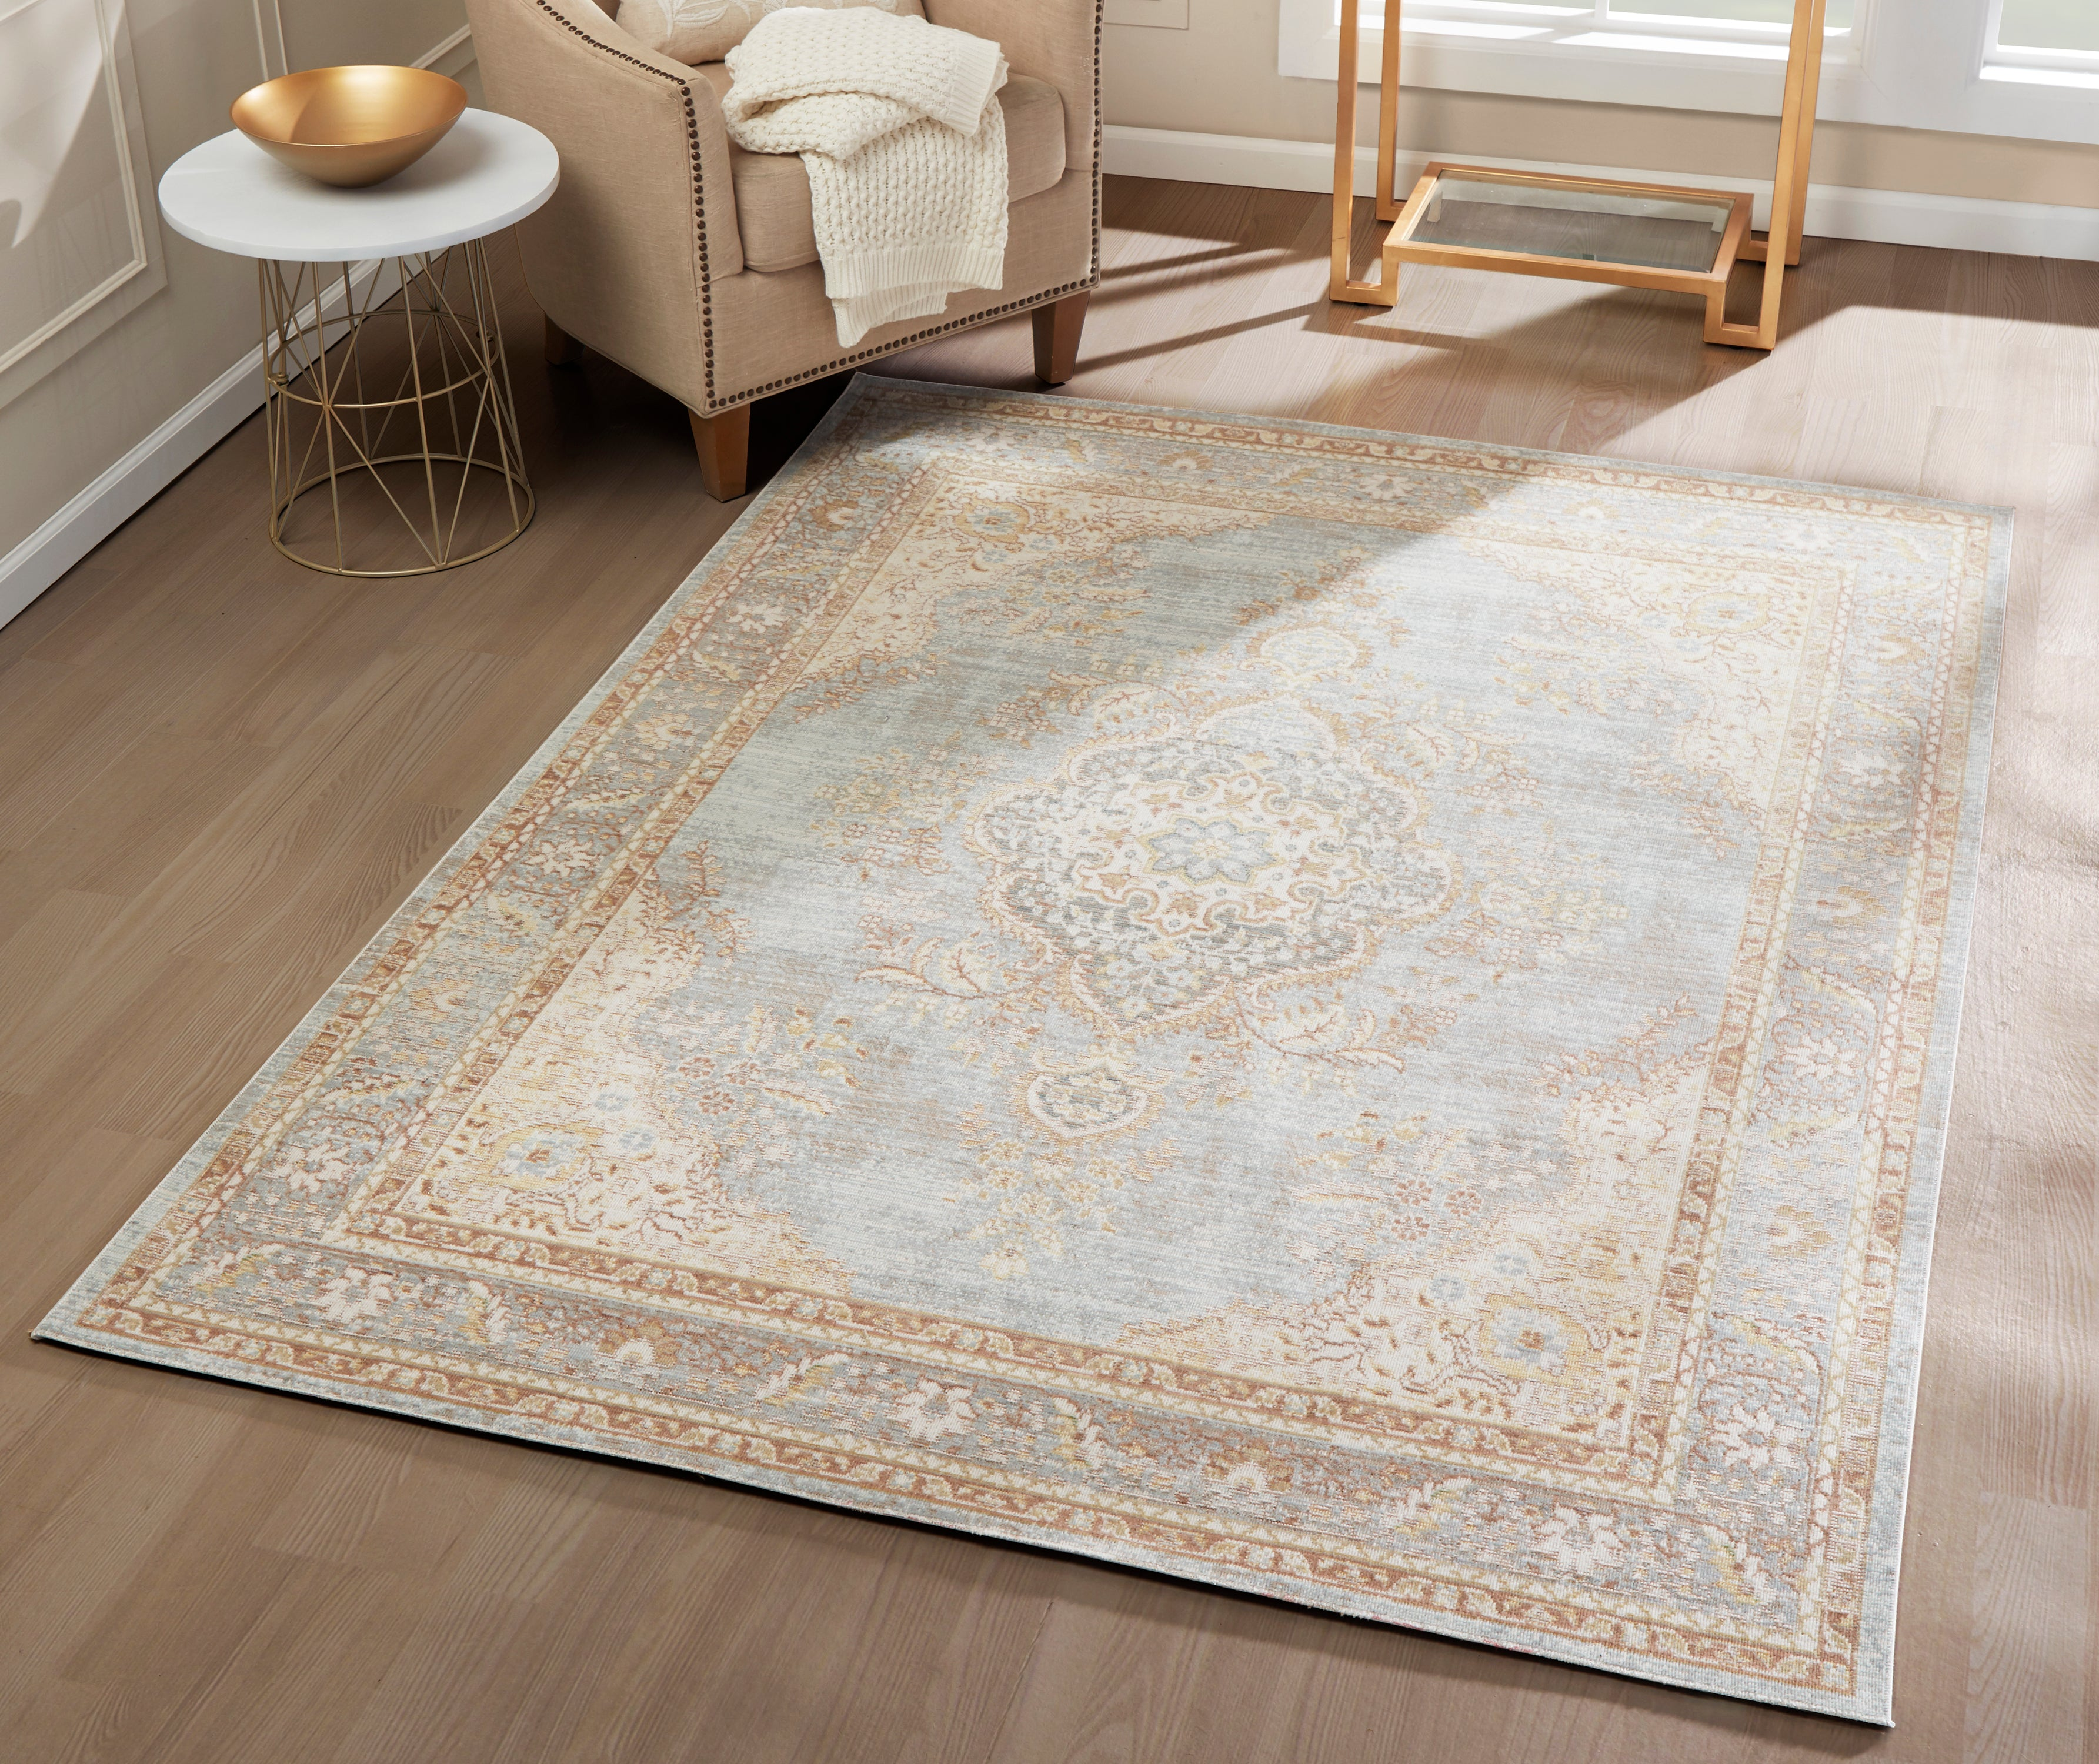 25% off all Momeni rugs